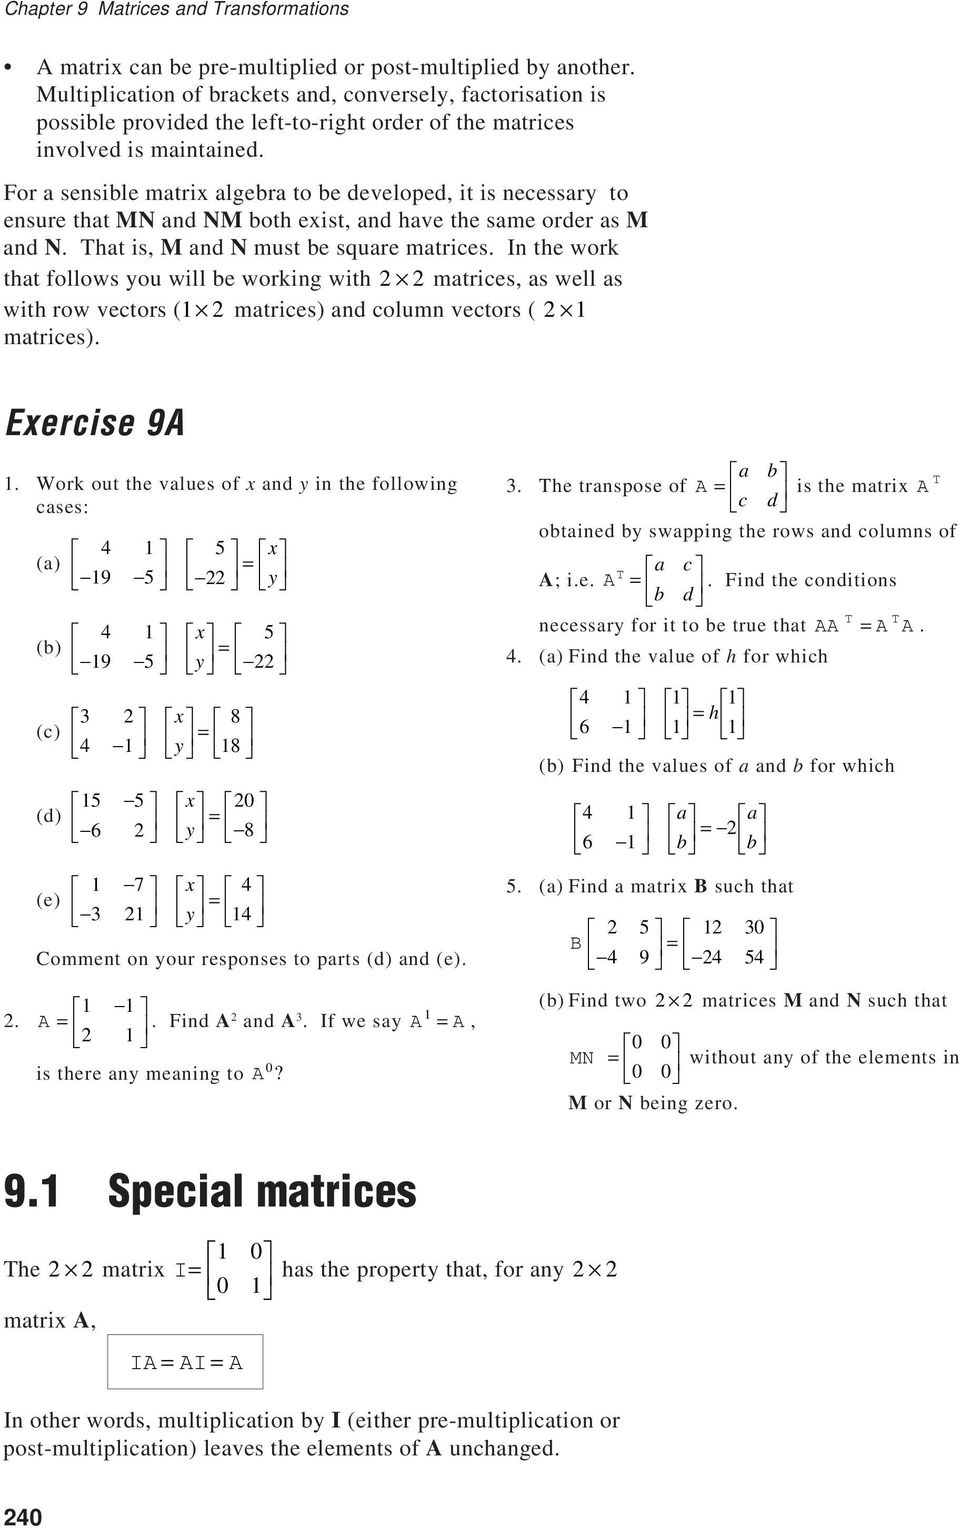 For a sensible matrix algebra to be developed, it is necessary to ensure that MN and NM both exist, and have the same order as M and N. That is, M and N must be square matrices.